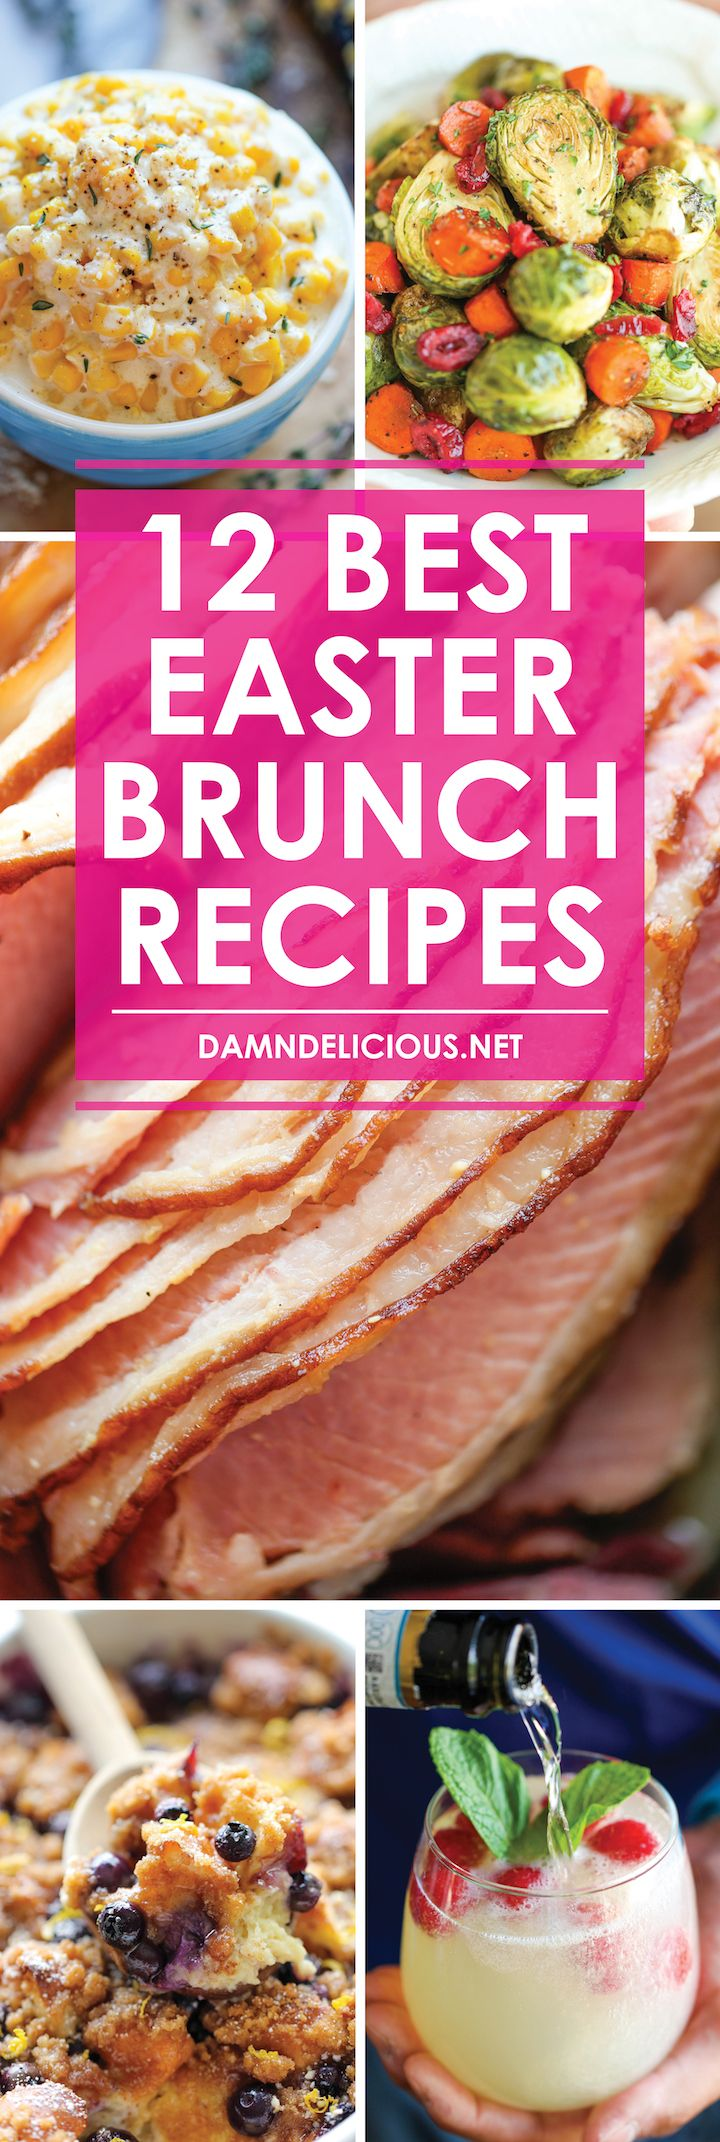 12 Best Easter Brunch Recipes - Have the best/easiest Easter brunch ever! From drinks to appetizers to sides to mains, this menu has you completely covered.  -  fruit, veggies, different meat, etc.  breakfast, lunch.  good for holidays.  easter, christmas, thanksgiving, etc.  damn delicious.   lj